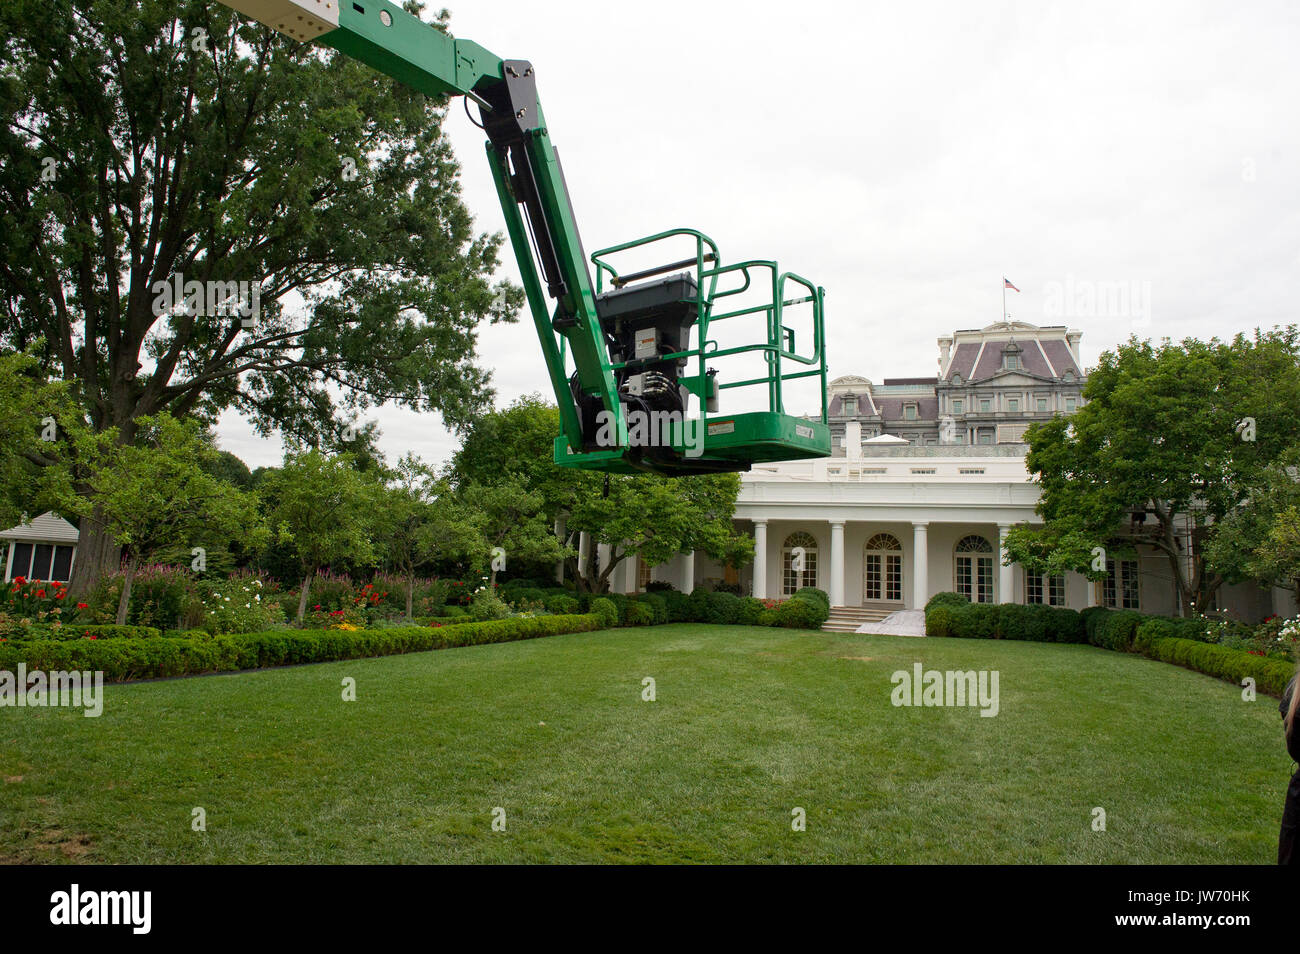 Construction crane in the Rose Garden of the White House looking ...